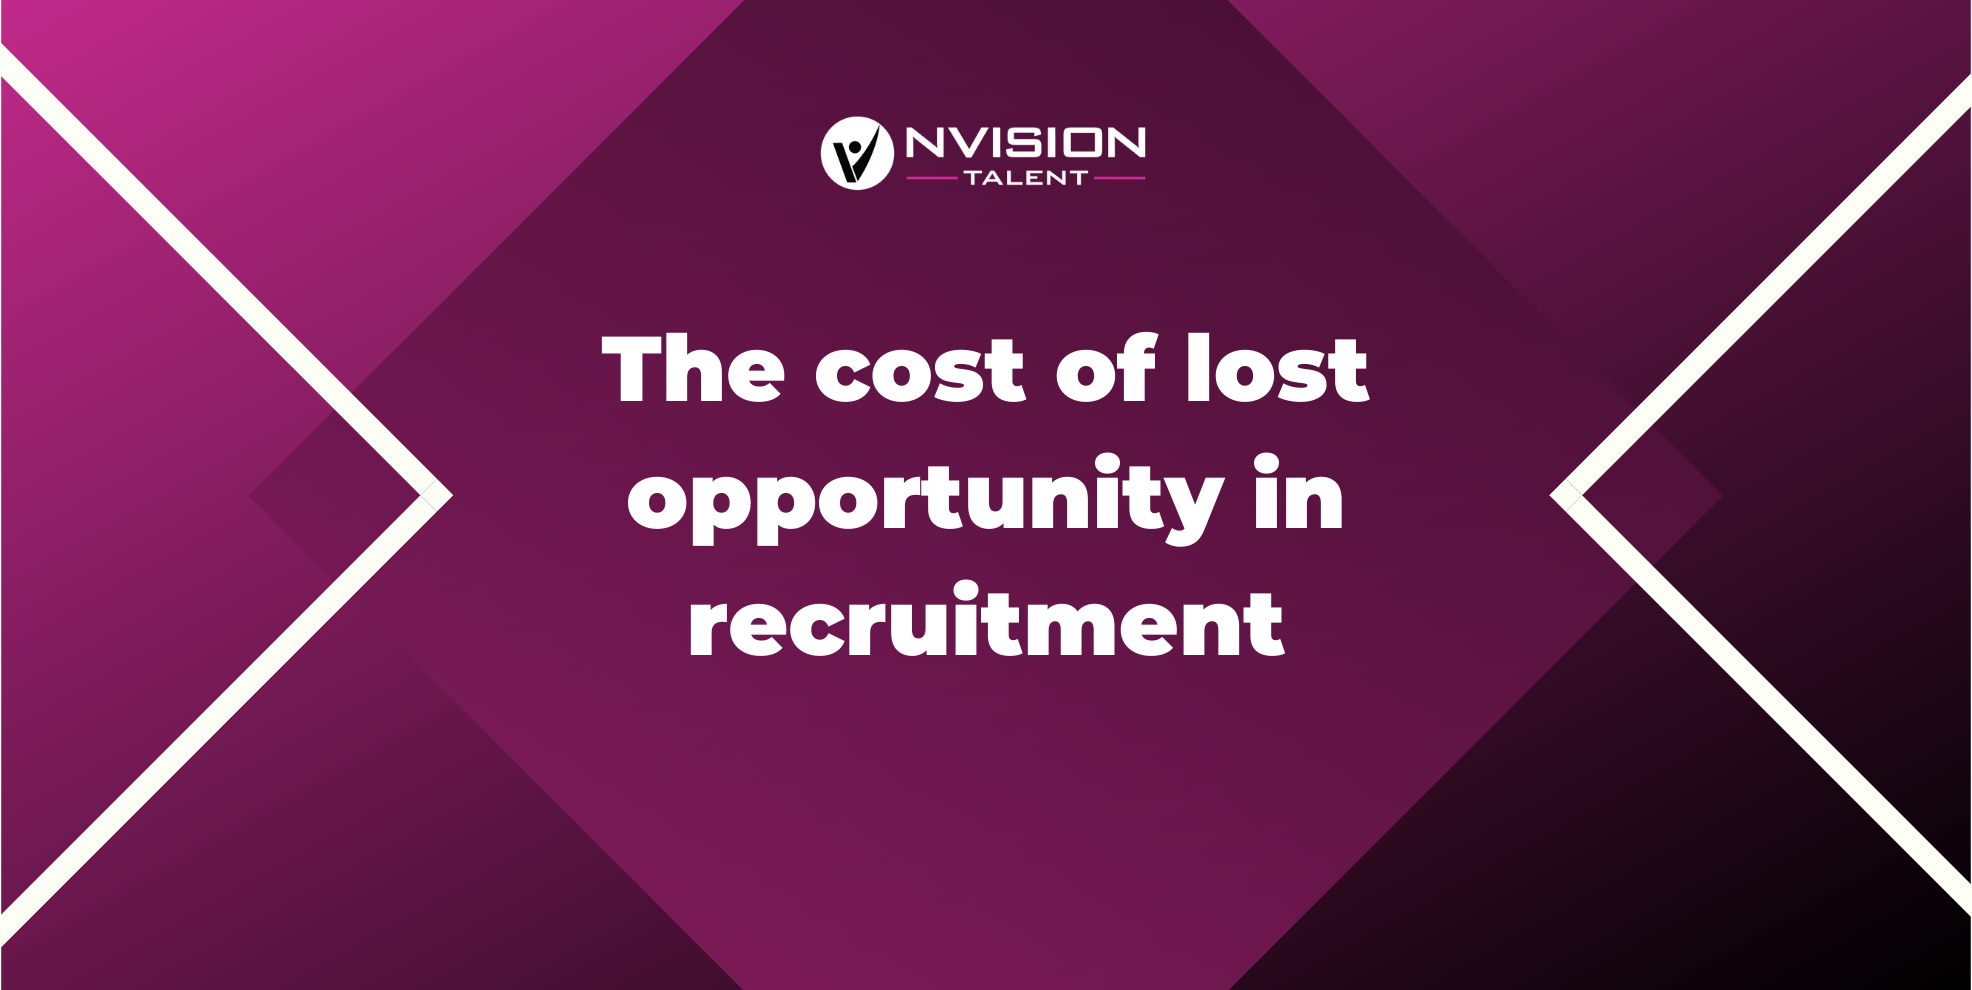 The cost of lost opportunity in recruitment